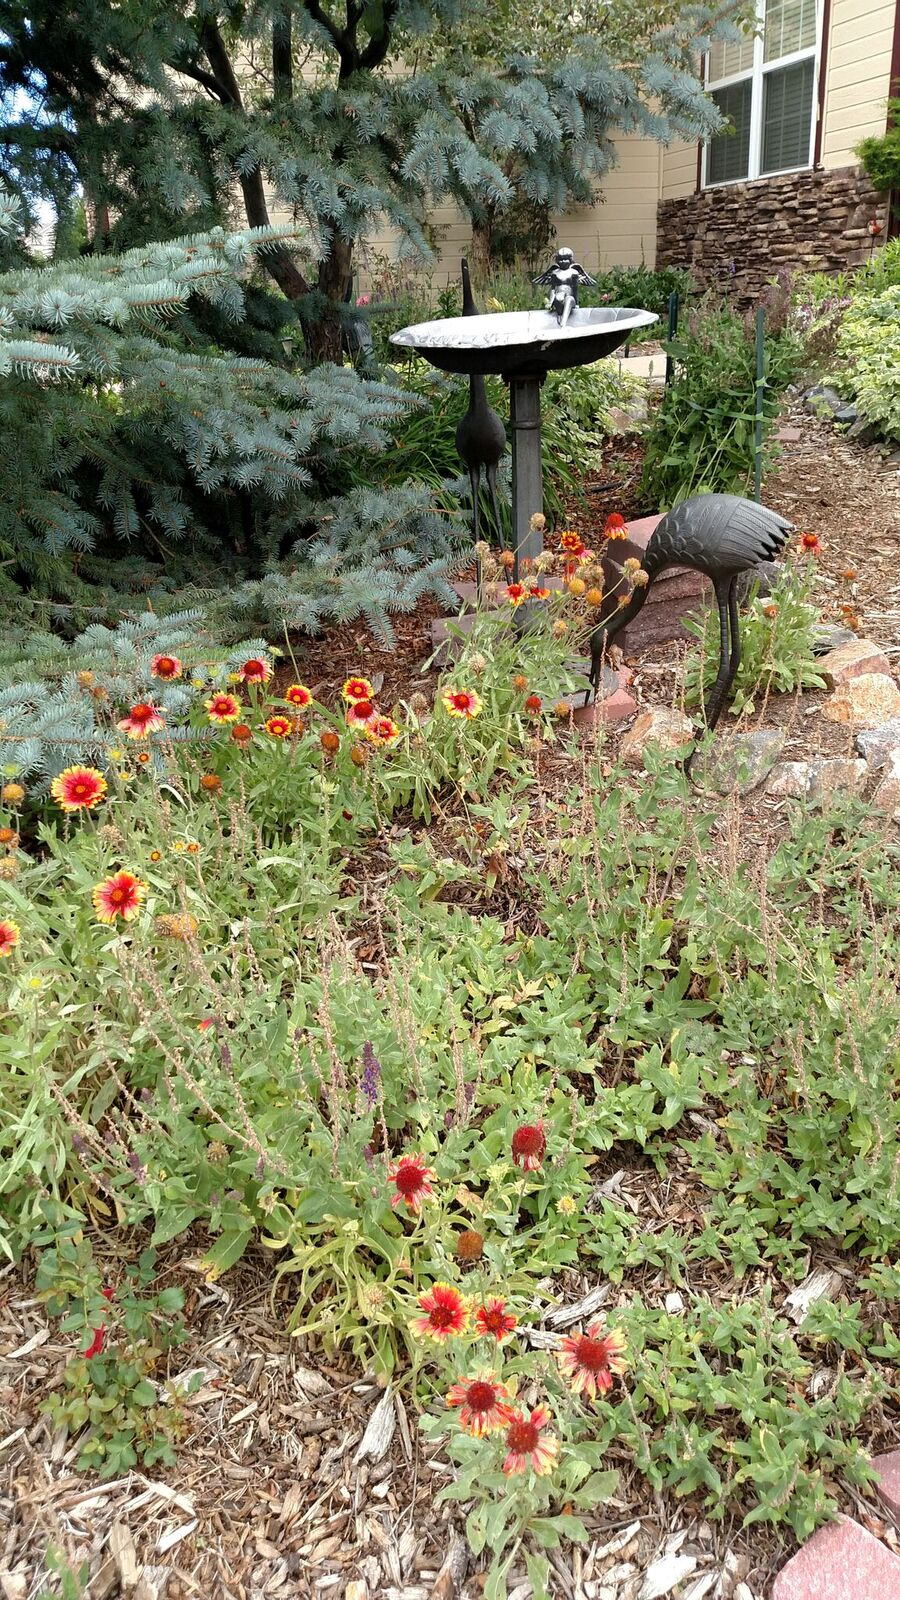 A bird bath and two nearby stork sculptures welcome avian wildlife to Melody Wilson's garden.